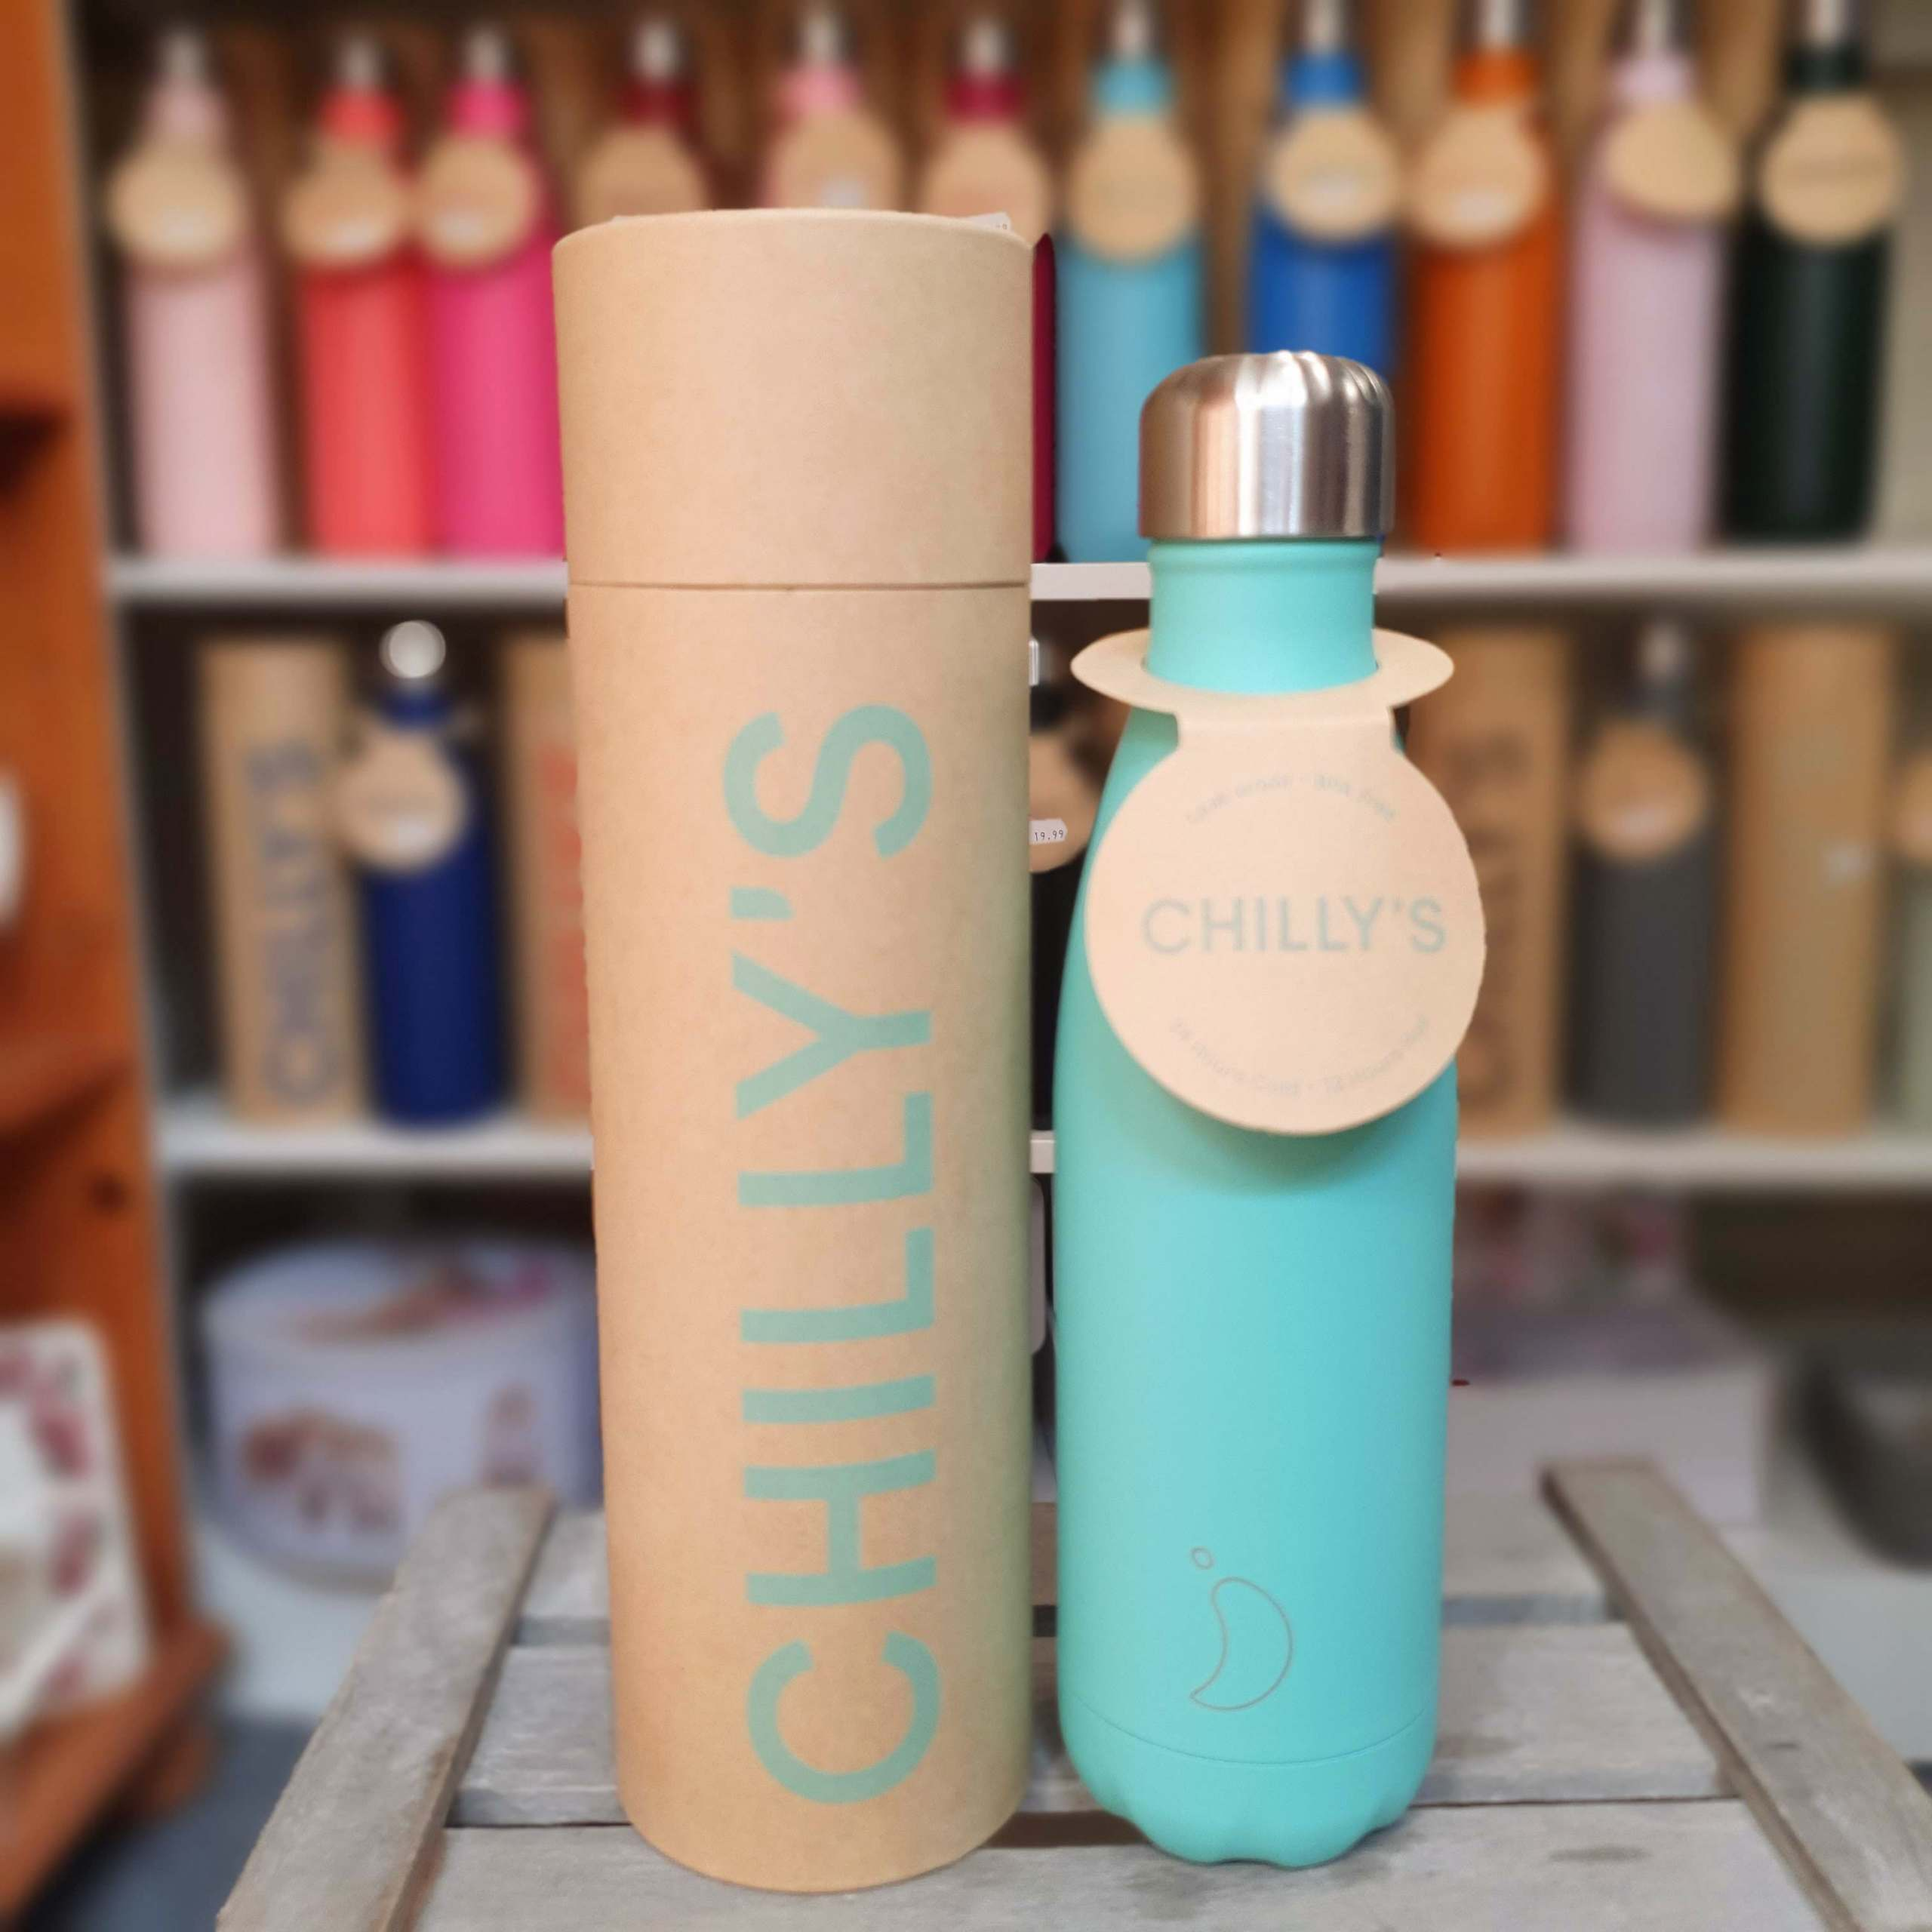 Pastel Green Chilly's Bottle